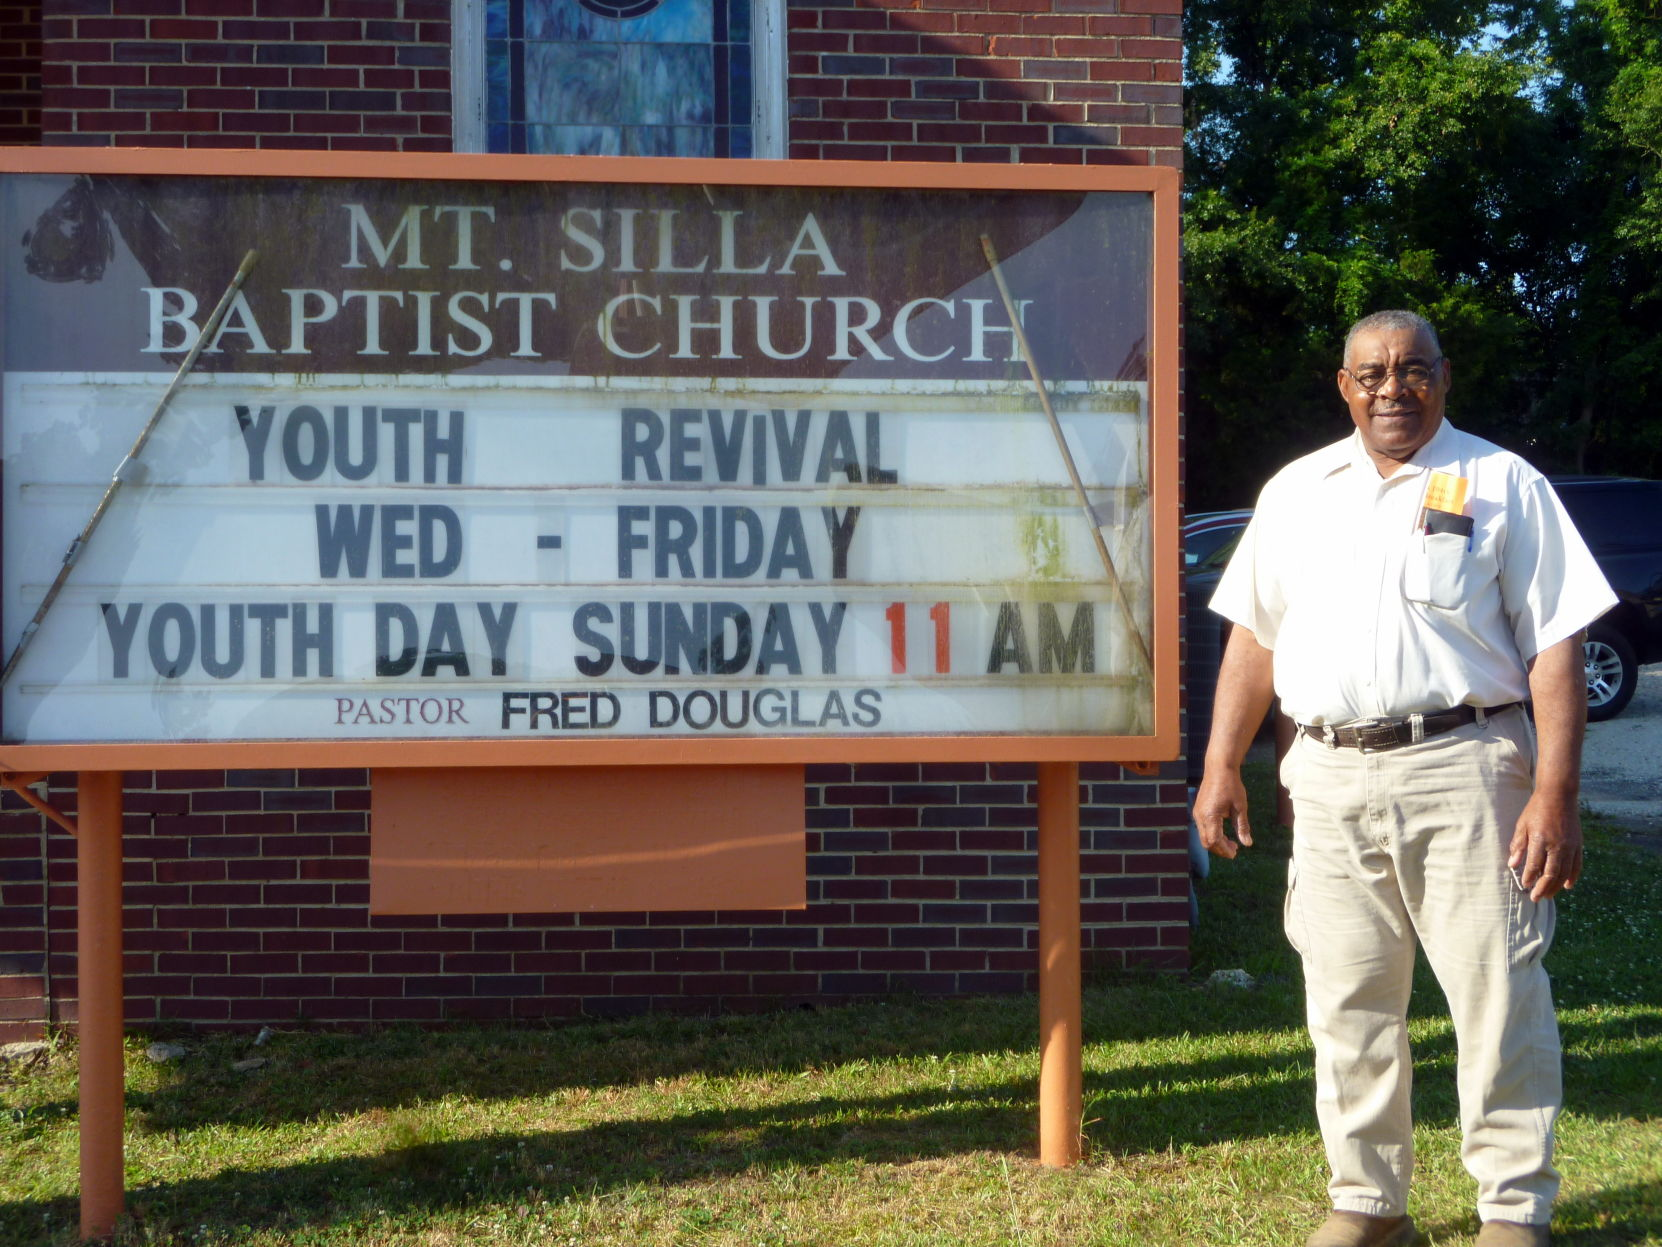 The present pastor of Mt. Silla Missionary Baptist Church is Rev. Fred Douglas.